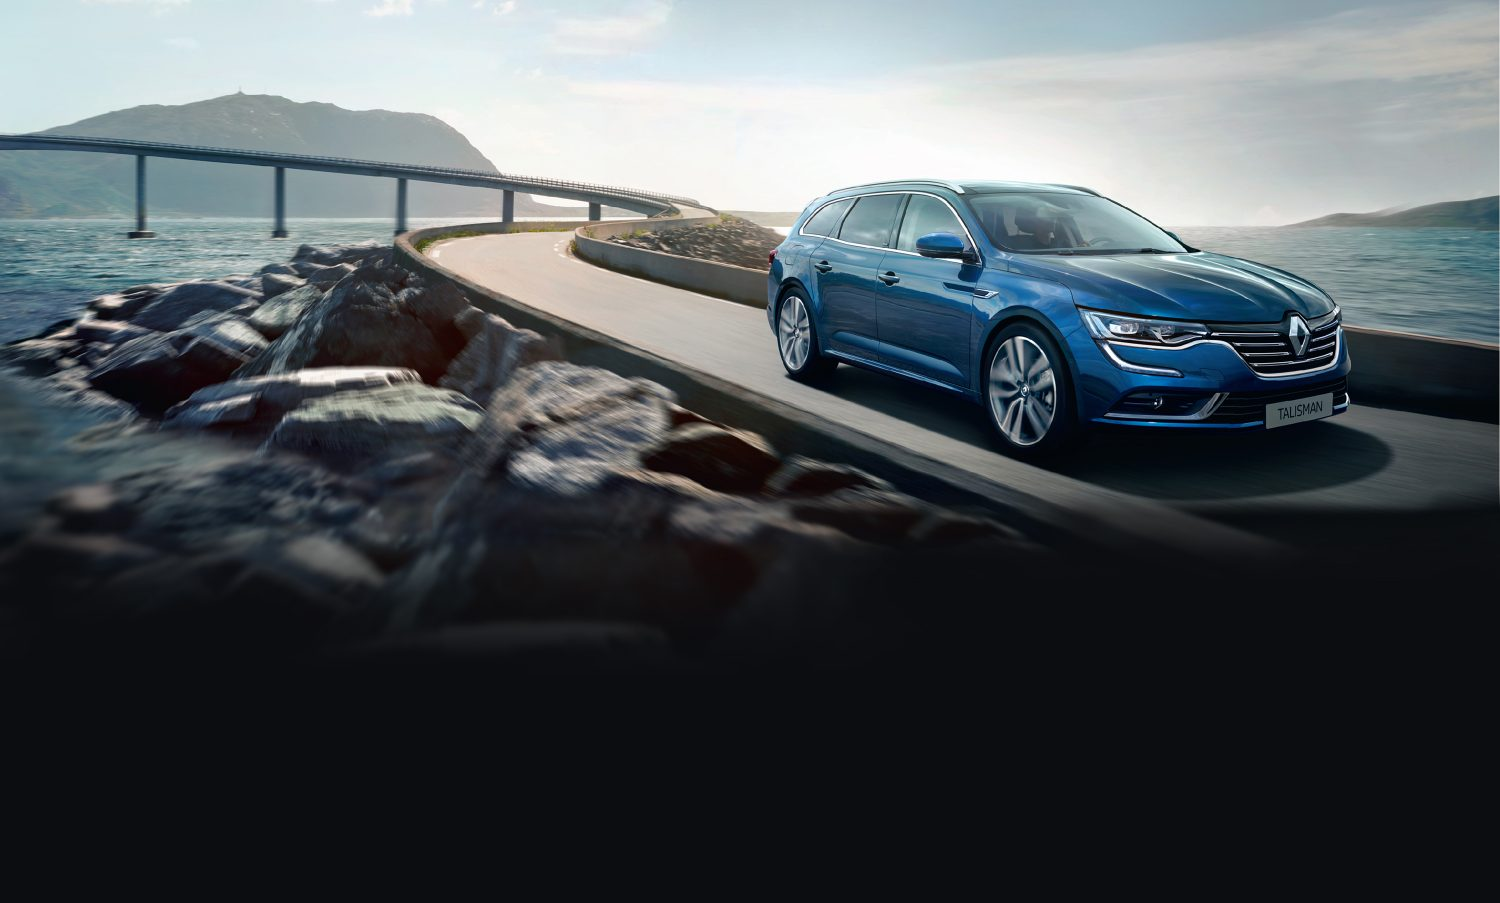 renault-talisman-estate-kfd-ph1-beauty-shots-desktop.jpg.ximg.l_full_m.smart.jpg